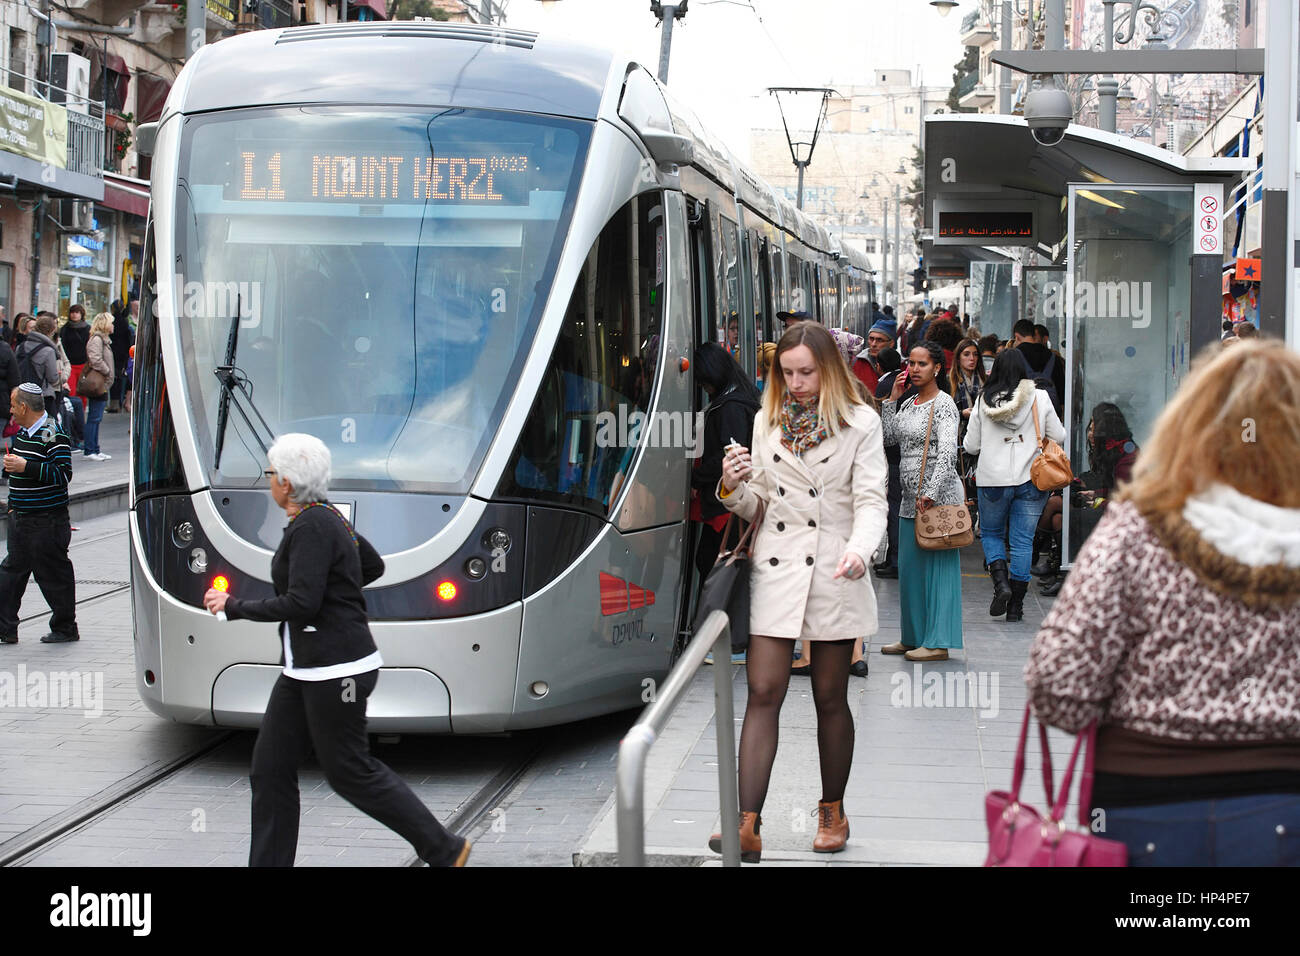 tram stop with people infront of Jerusalem Light Rail Transit (L 1)  at jaffa road in western part of new jerusalem, - Stock Image